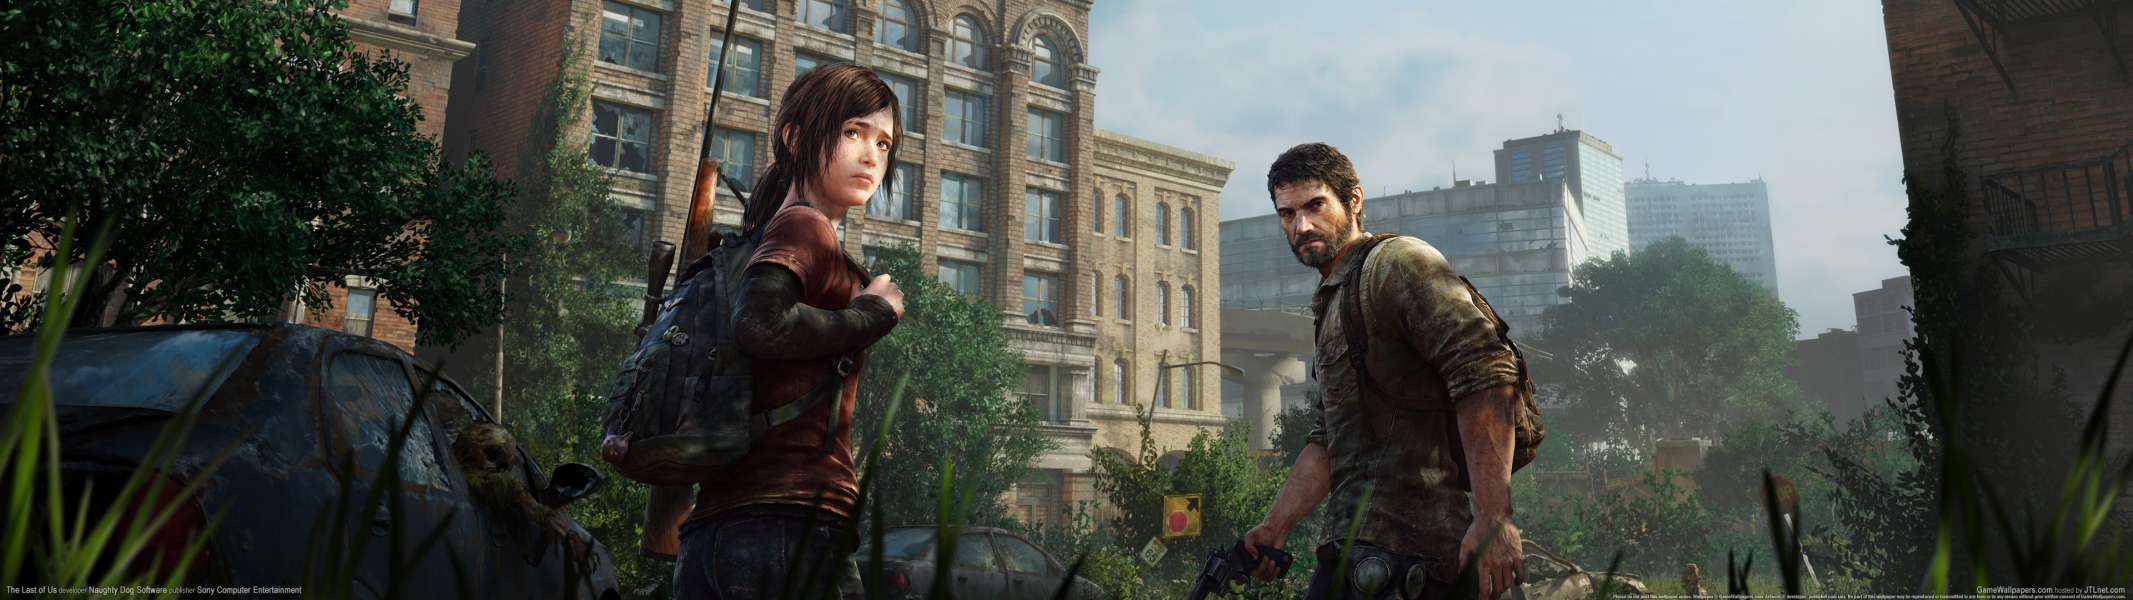 The Last of Us dual screen wallpaper or background